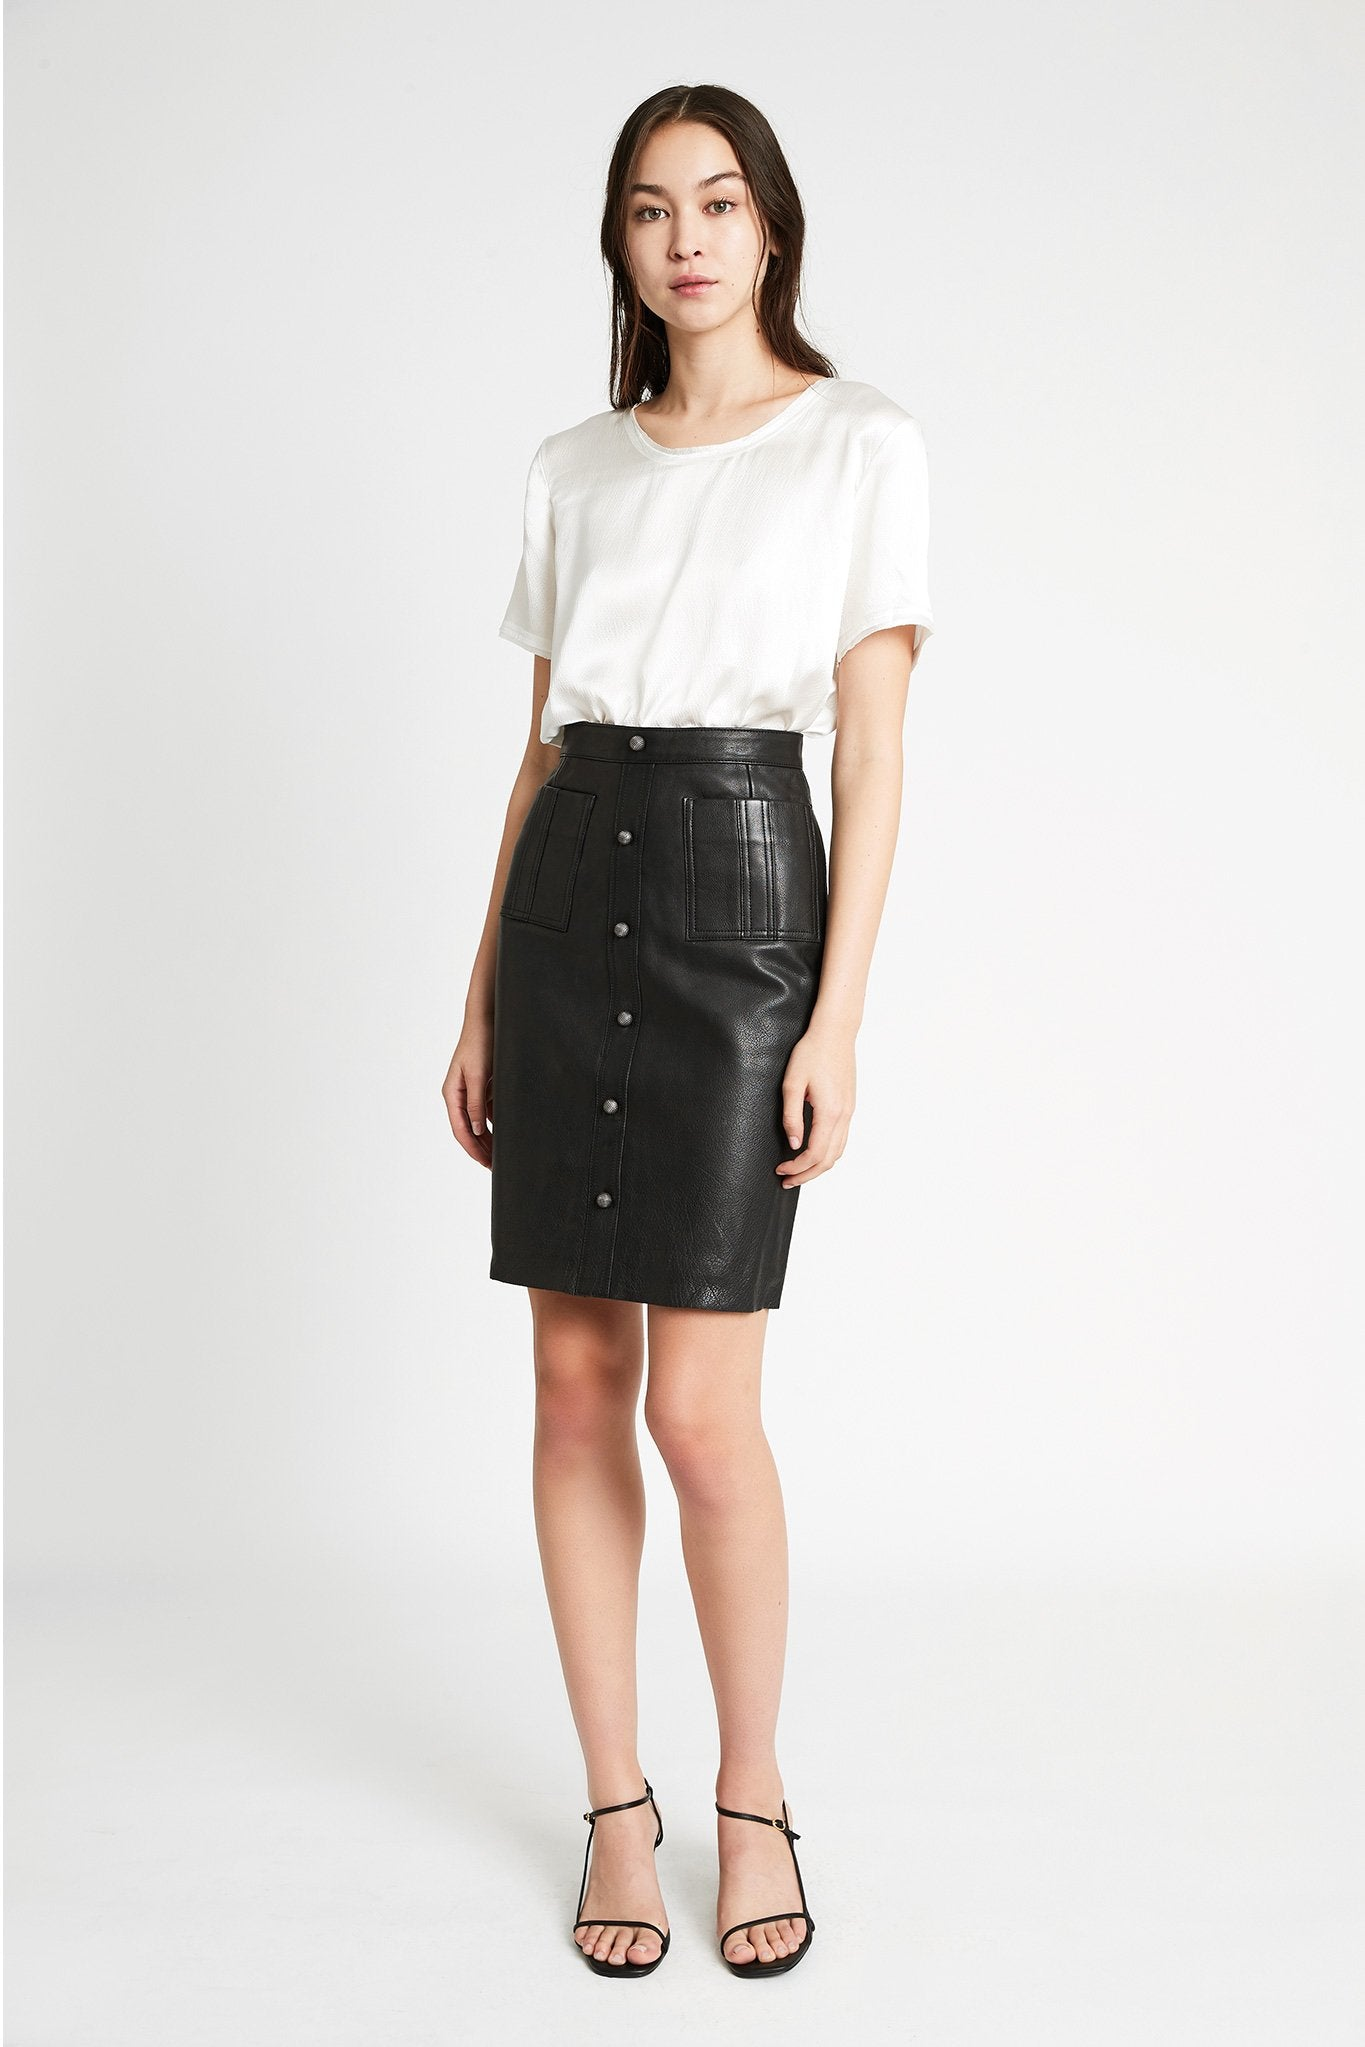 Martin Pencil Skirt Outfit View